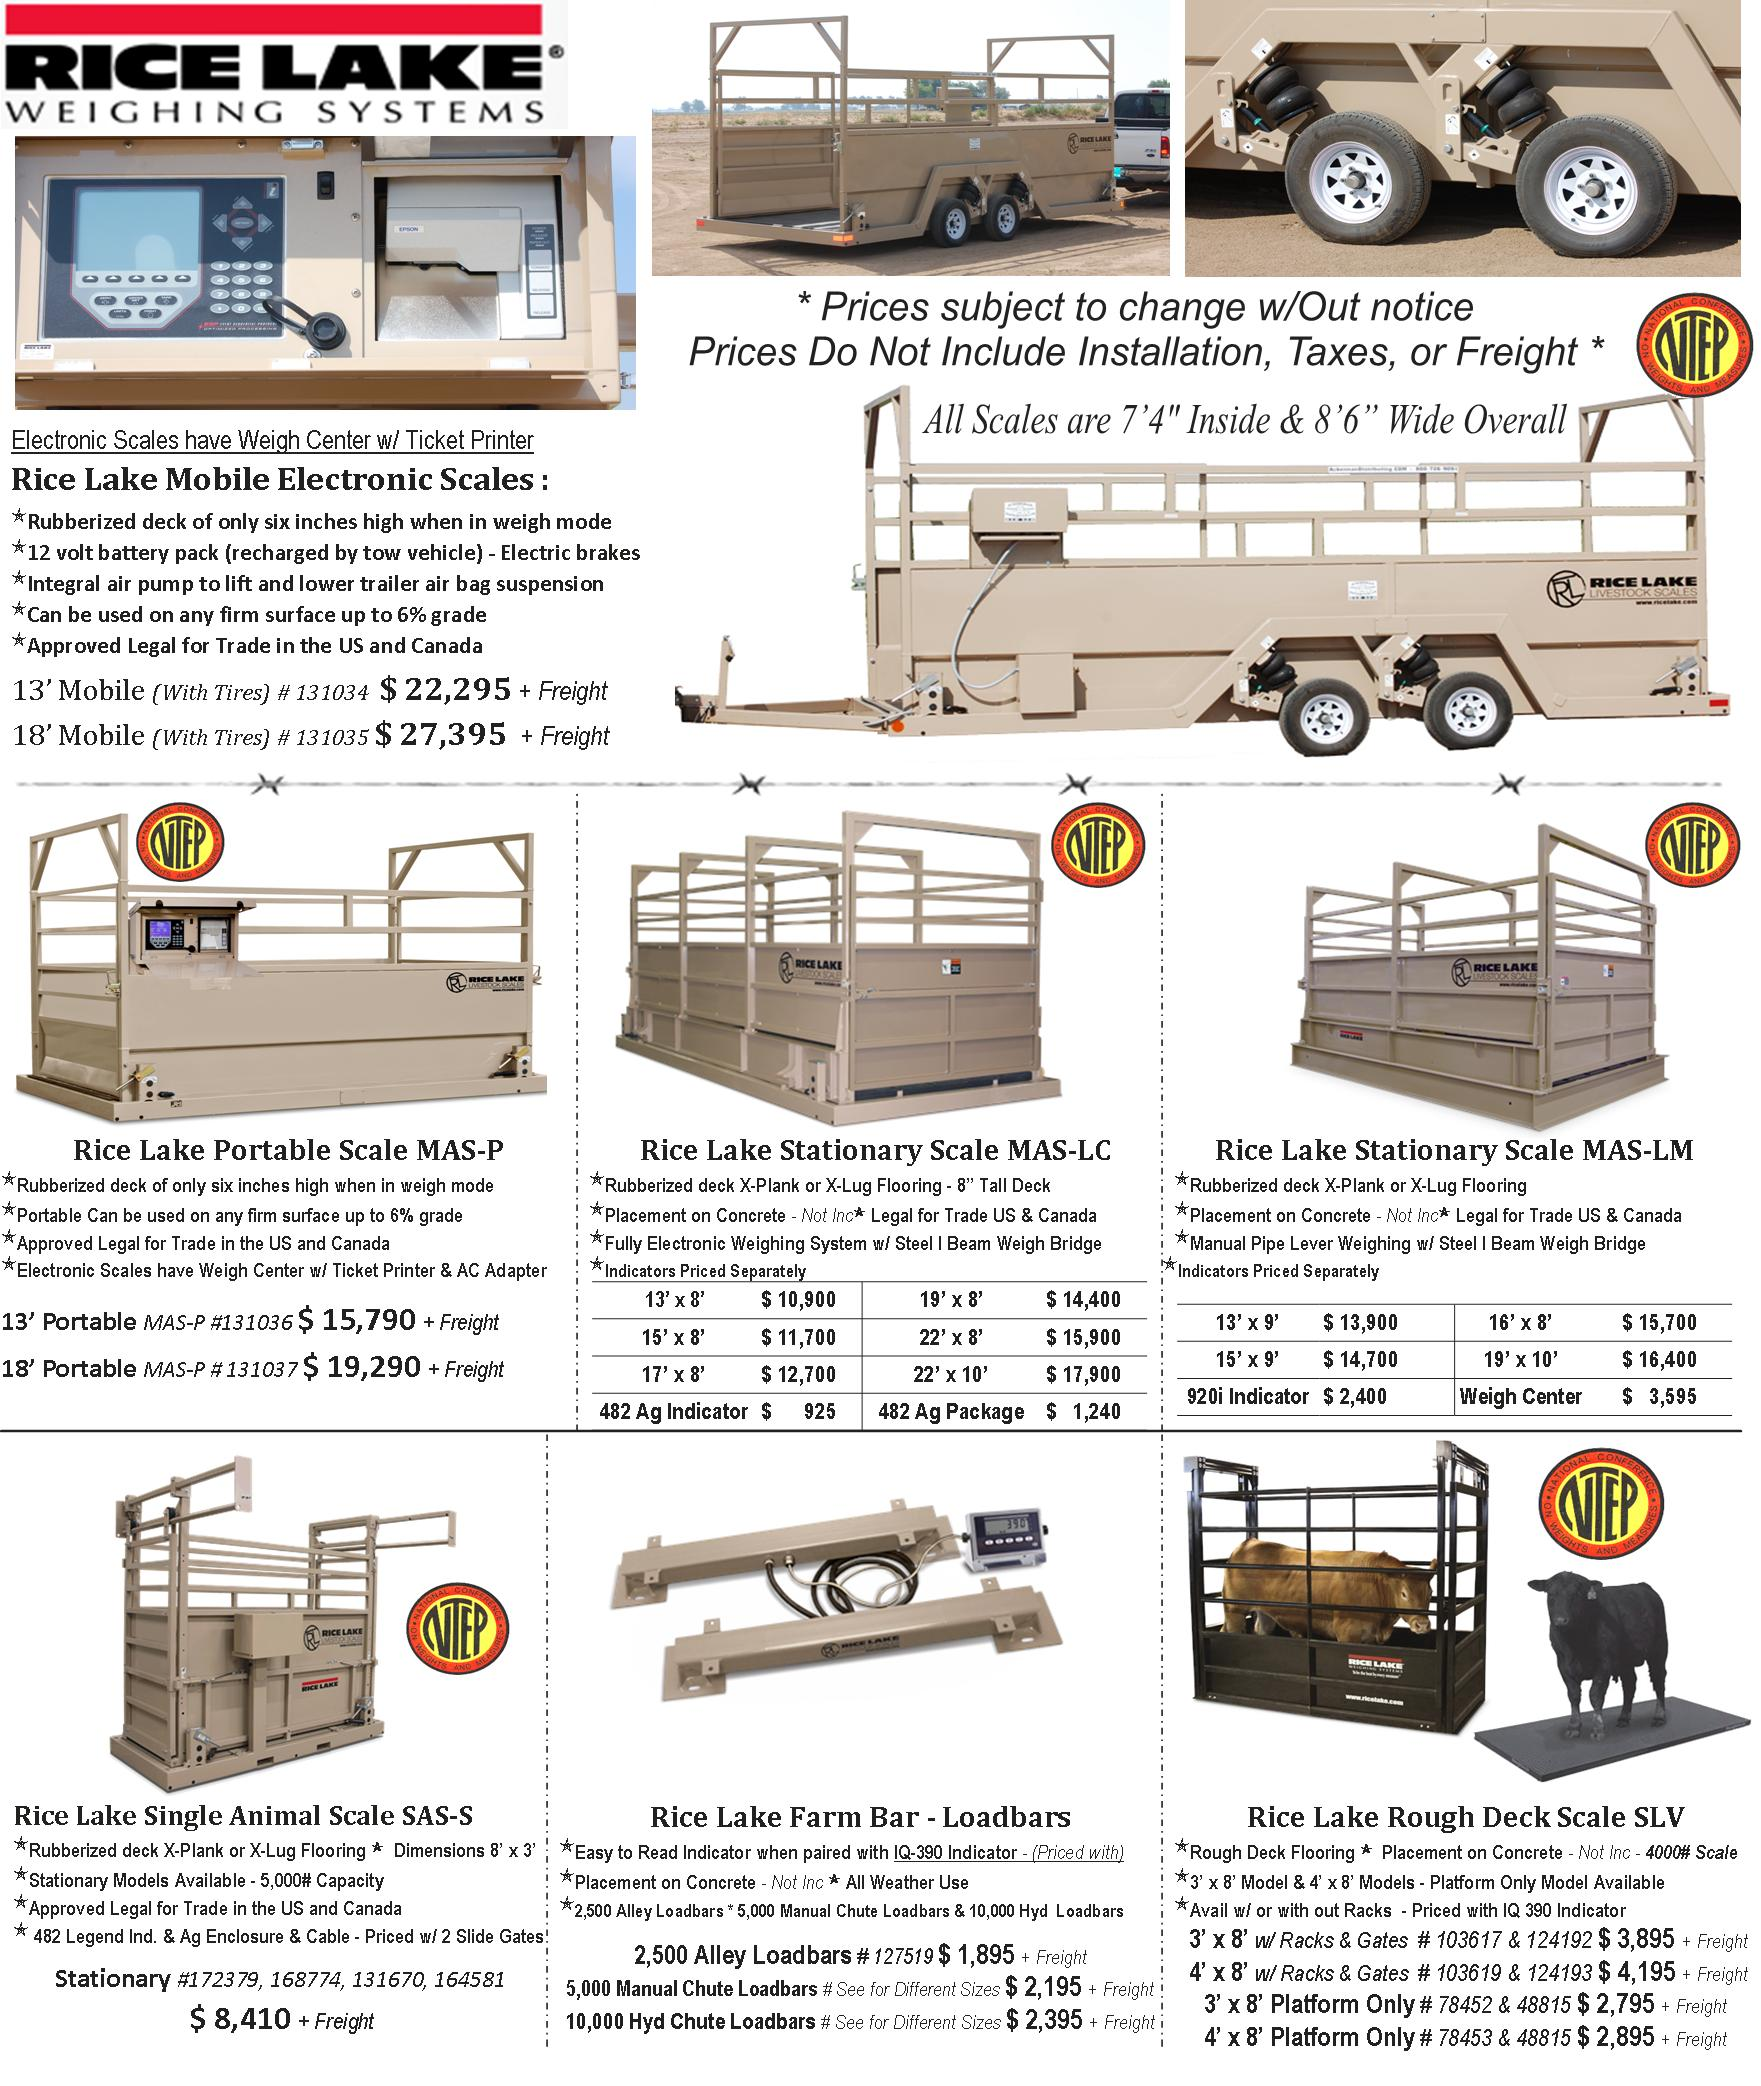 Rice Lake Mobile Group Livestock Scales - Portable on Wheels - Legal for Trade INTEP APPROVED  !